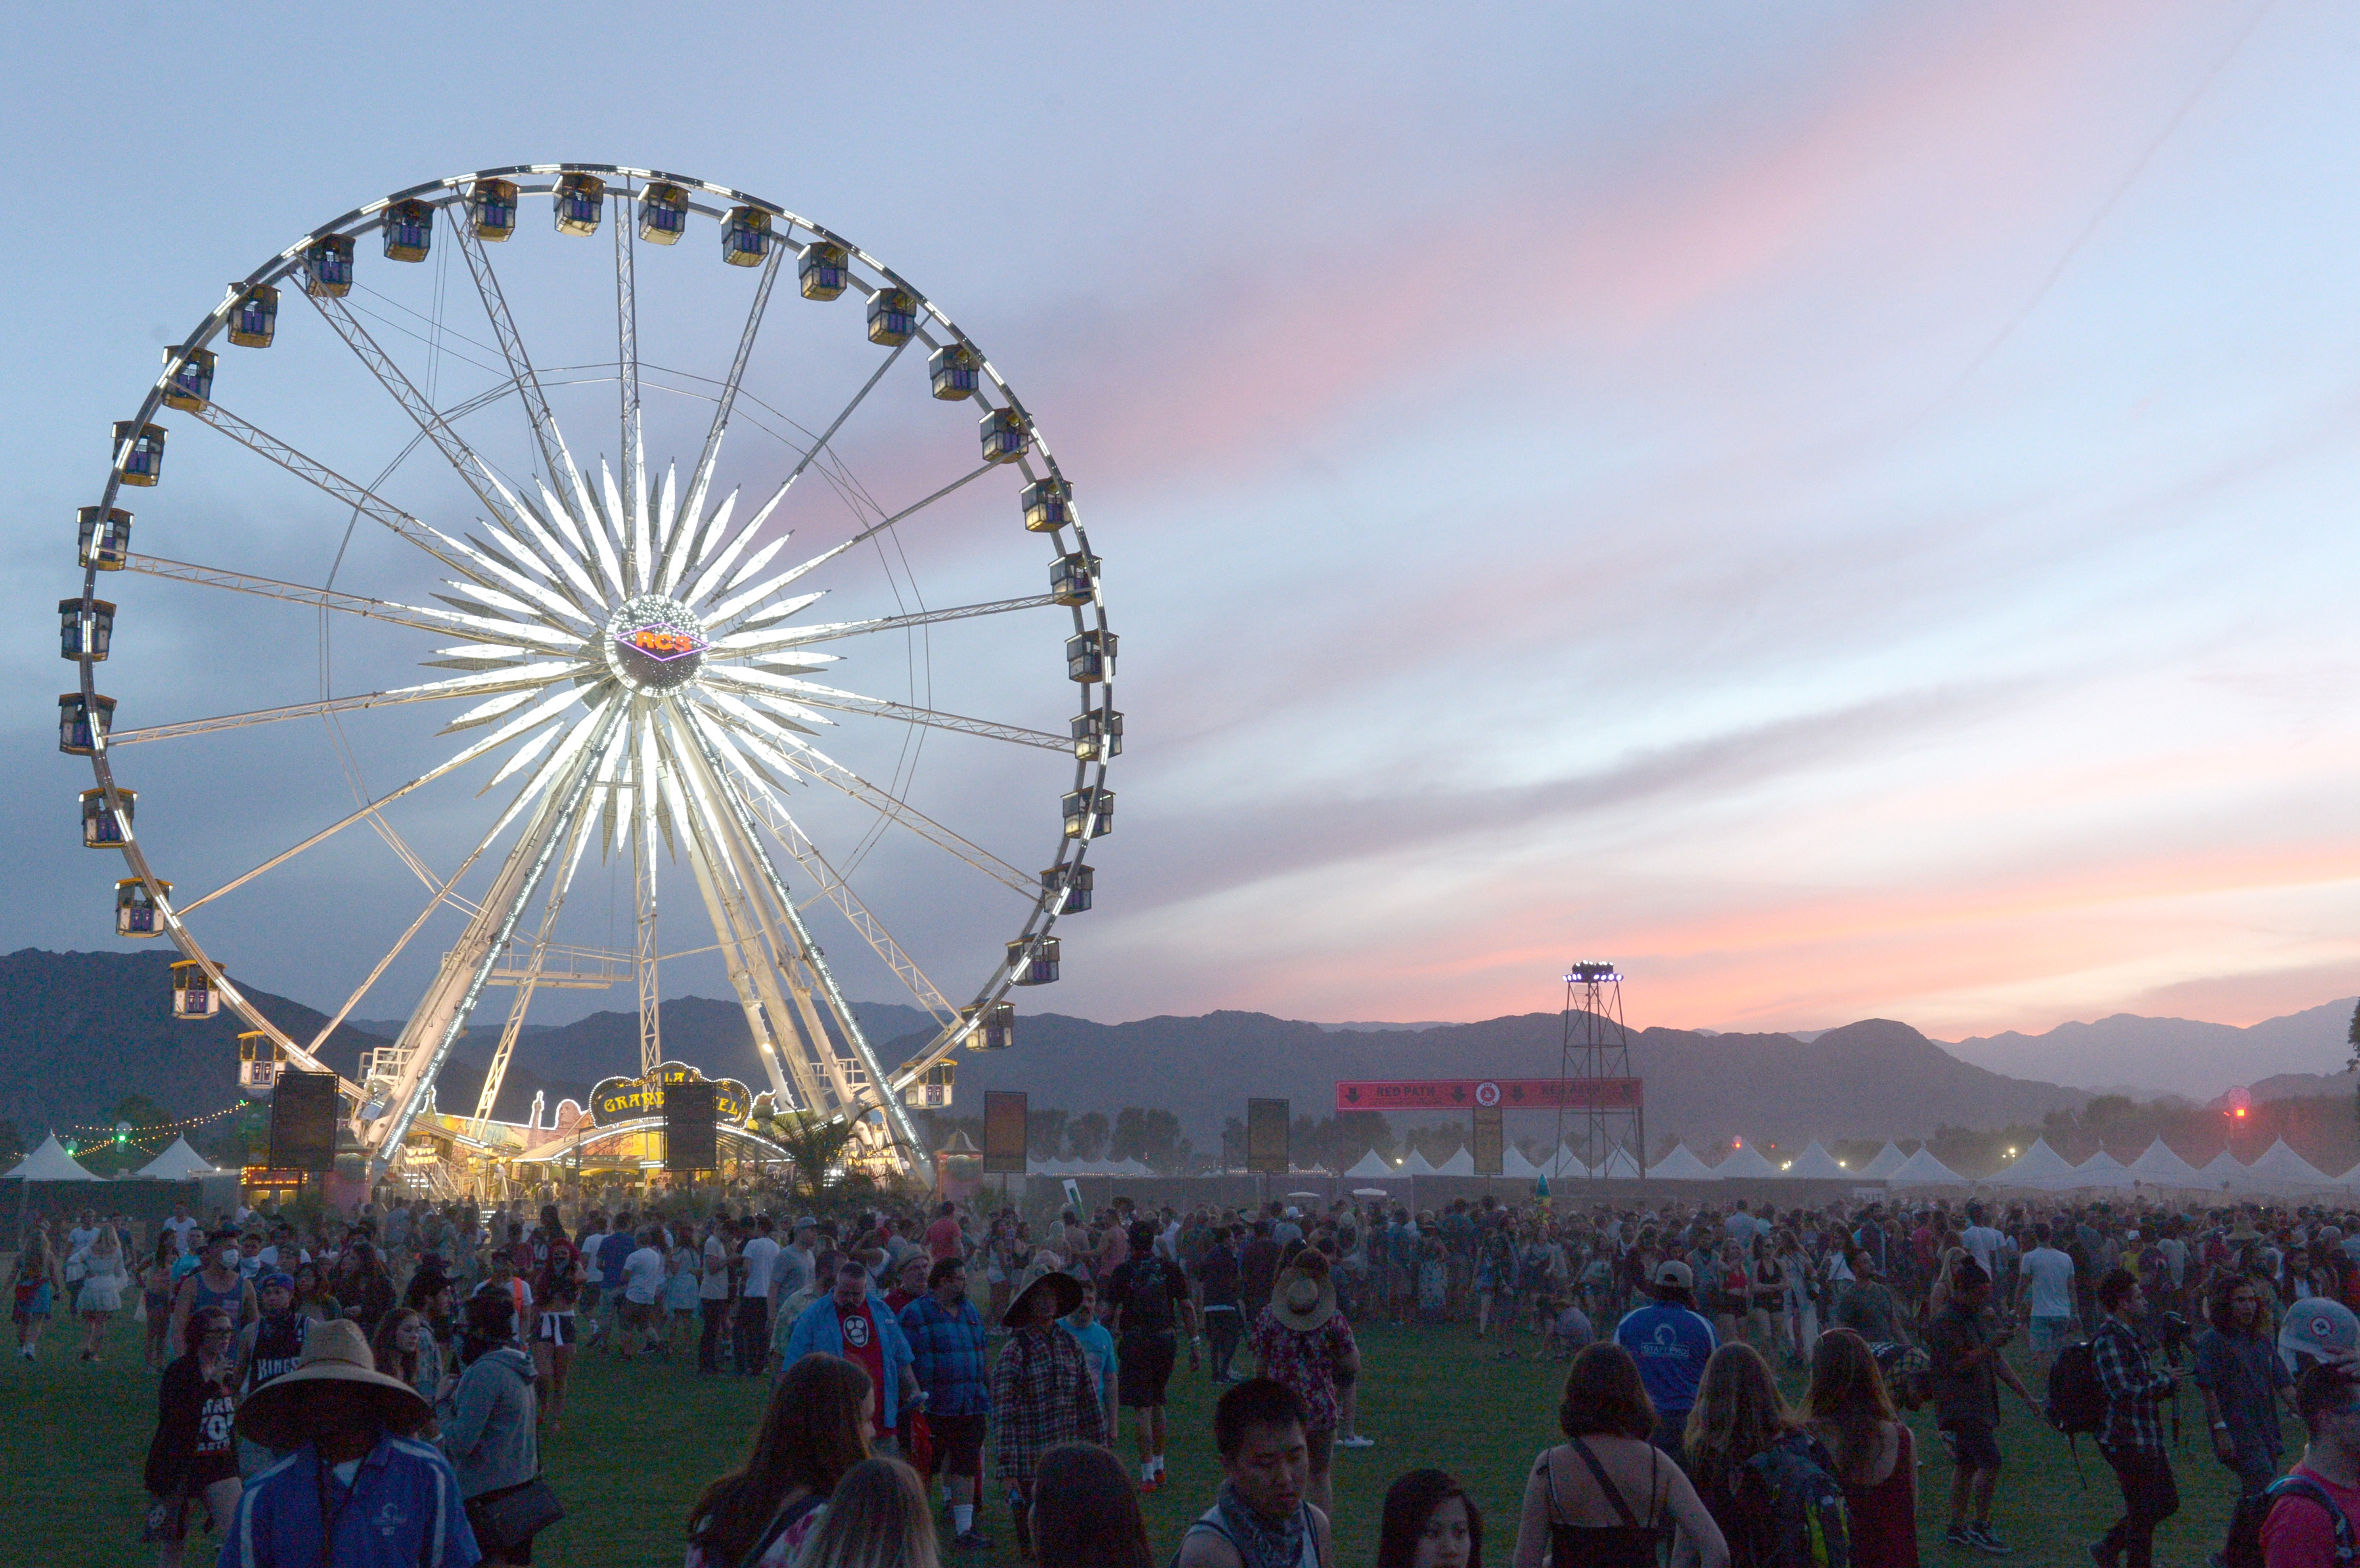 The Ferris wheel is seen after sunset during day 1 of the 2015 Coachella Valley Music & Arts Festival (Weekend 1) at the Empire Polo Club on April 10, 2015 in Indio, California.